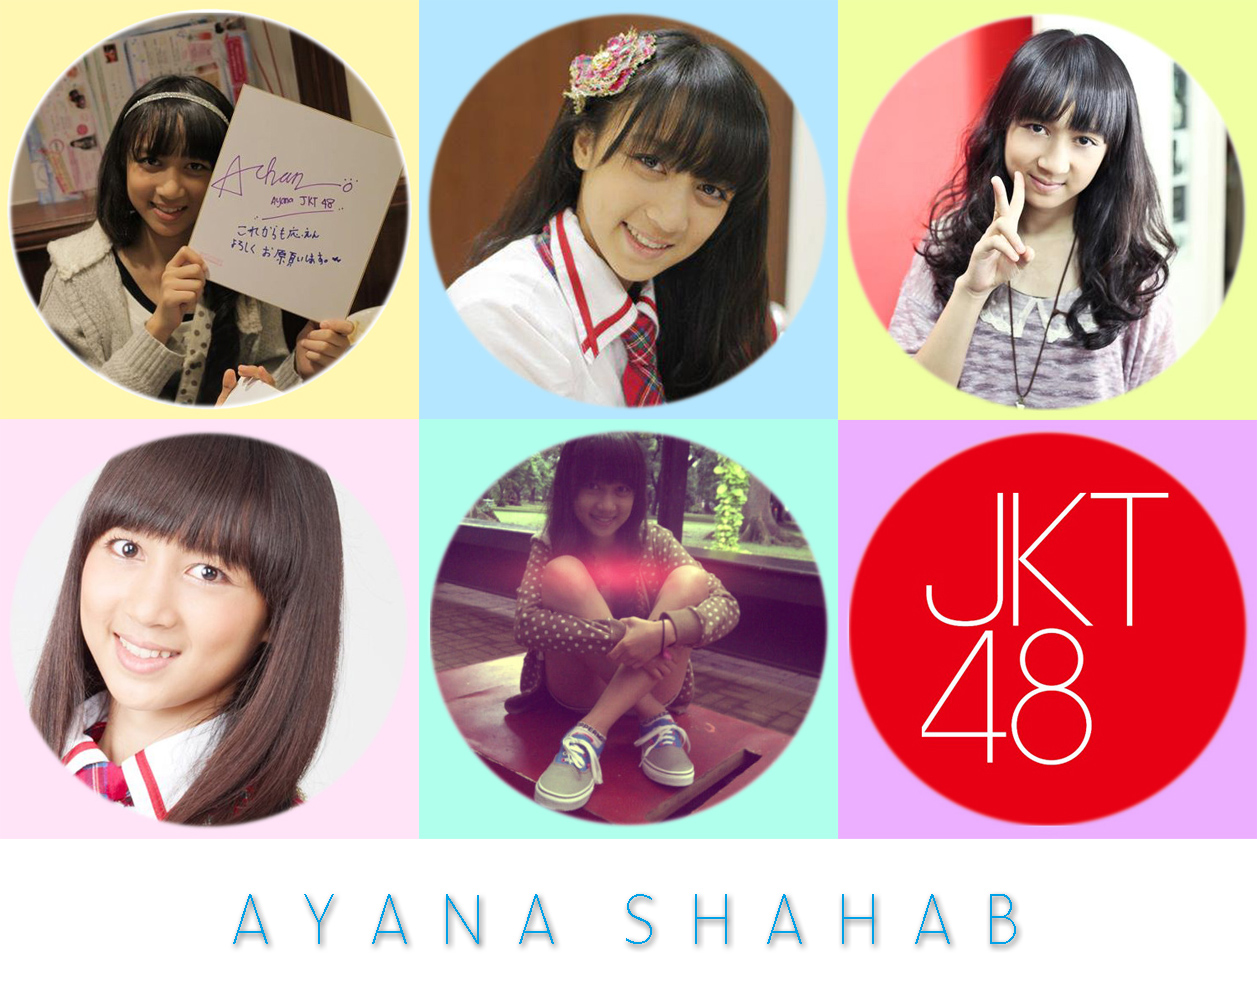 http://3.bp.blogspot.com/-At8tH1Otcxw/T9OfkVWWTNI/AAAAAAAAB_M/nC2jhWt-1uI/s1600/1672+-+JKT48+achan+wallpaper.jpg